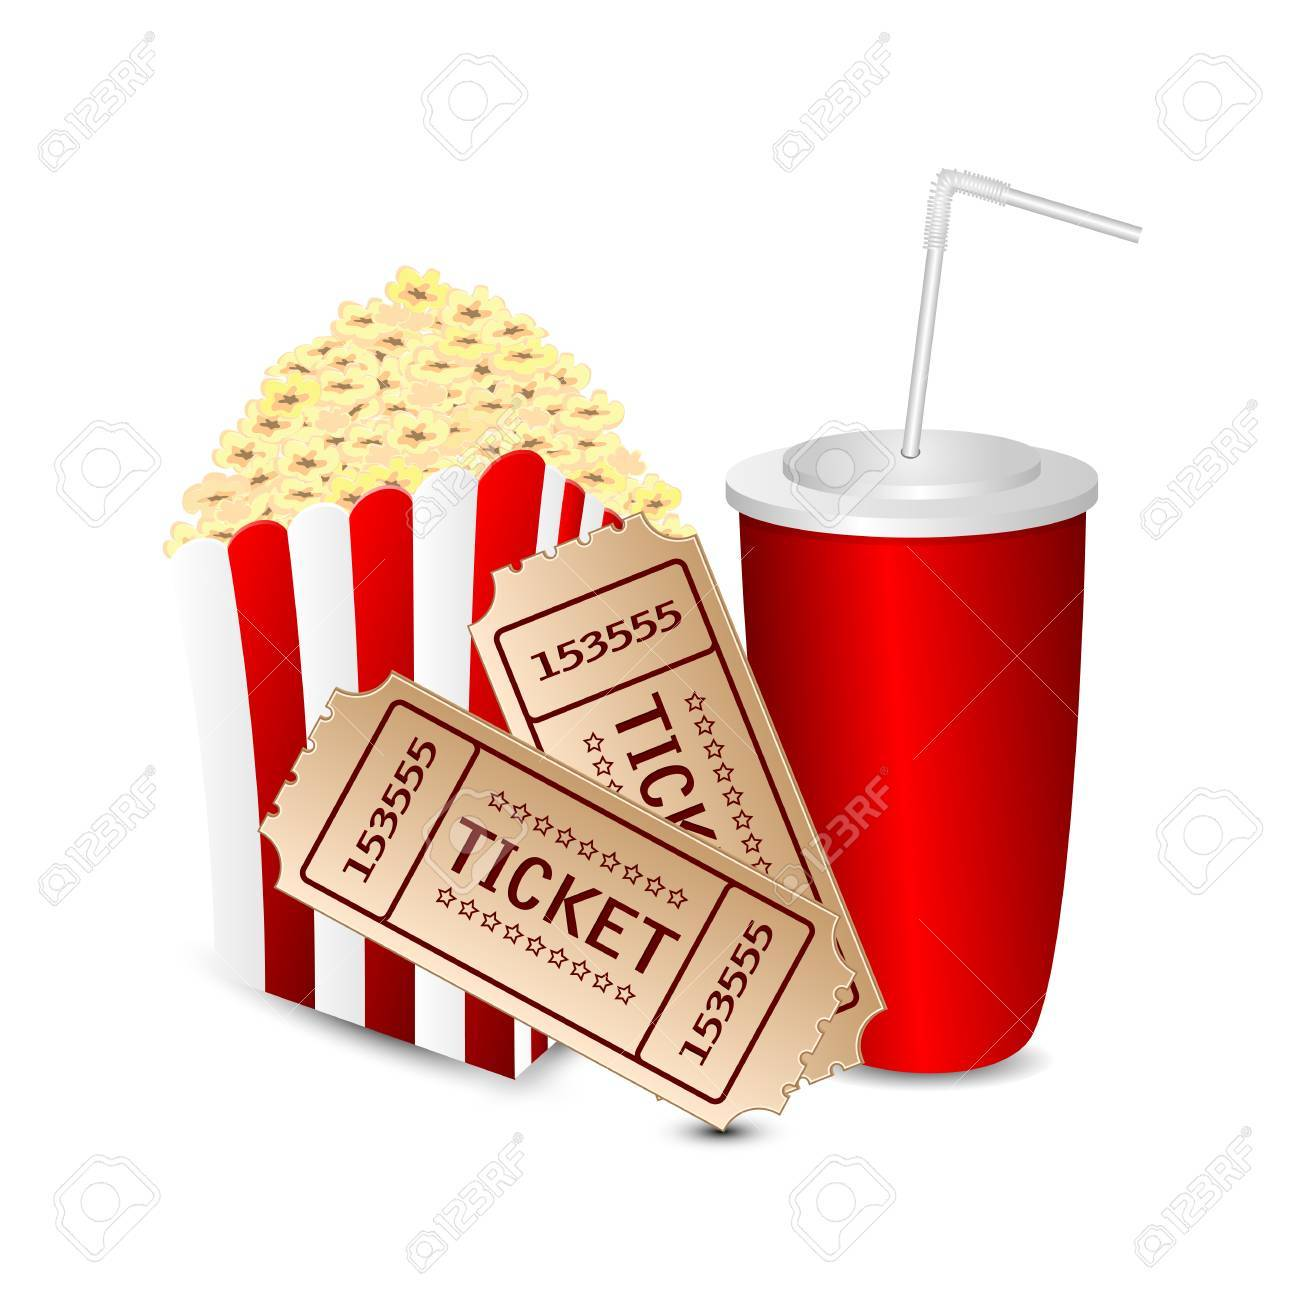 Movie tickets and popcorn clipart 3 » Clipart Portal.